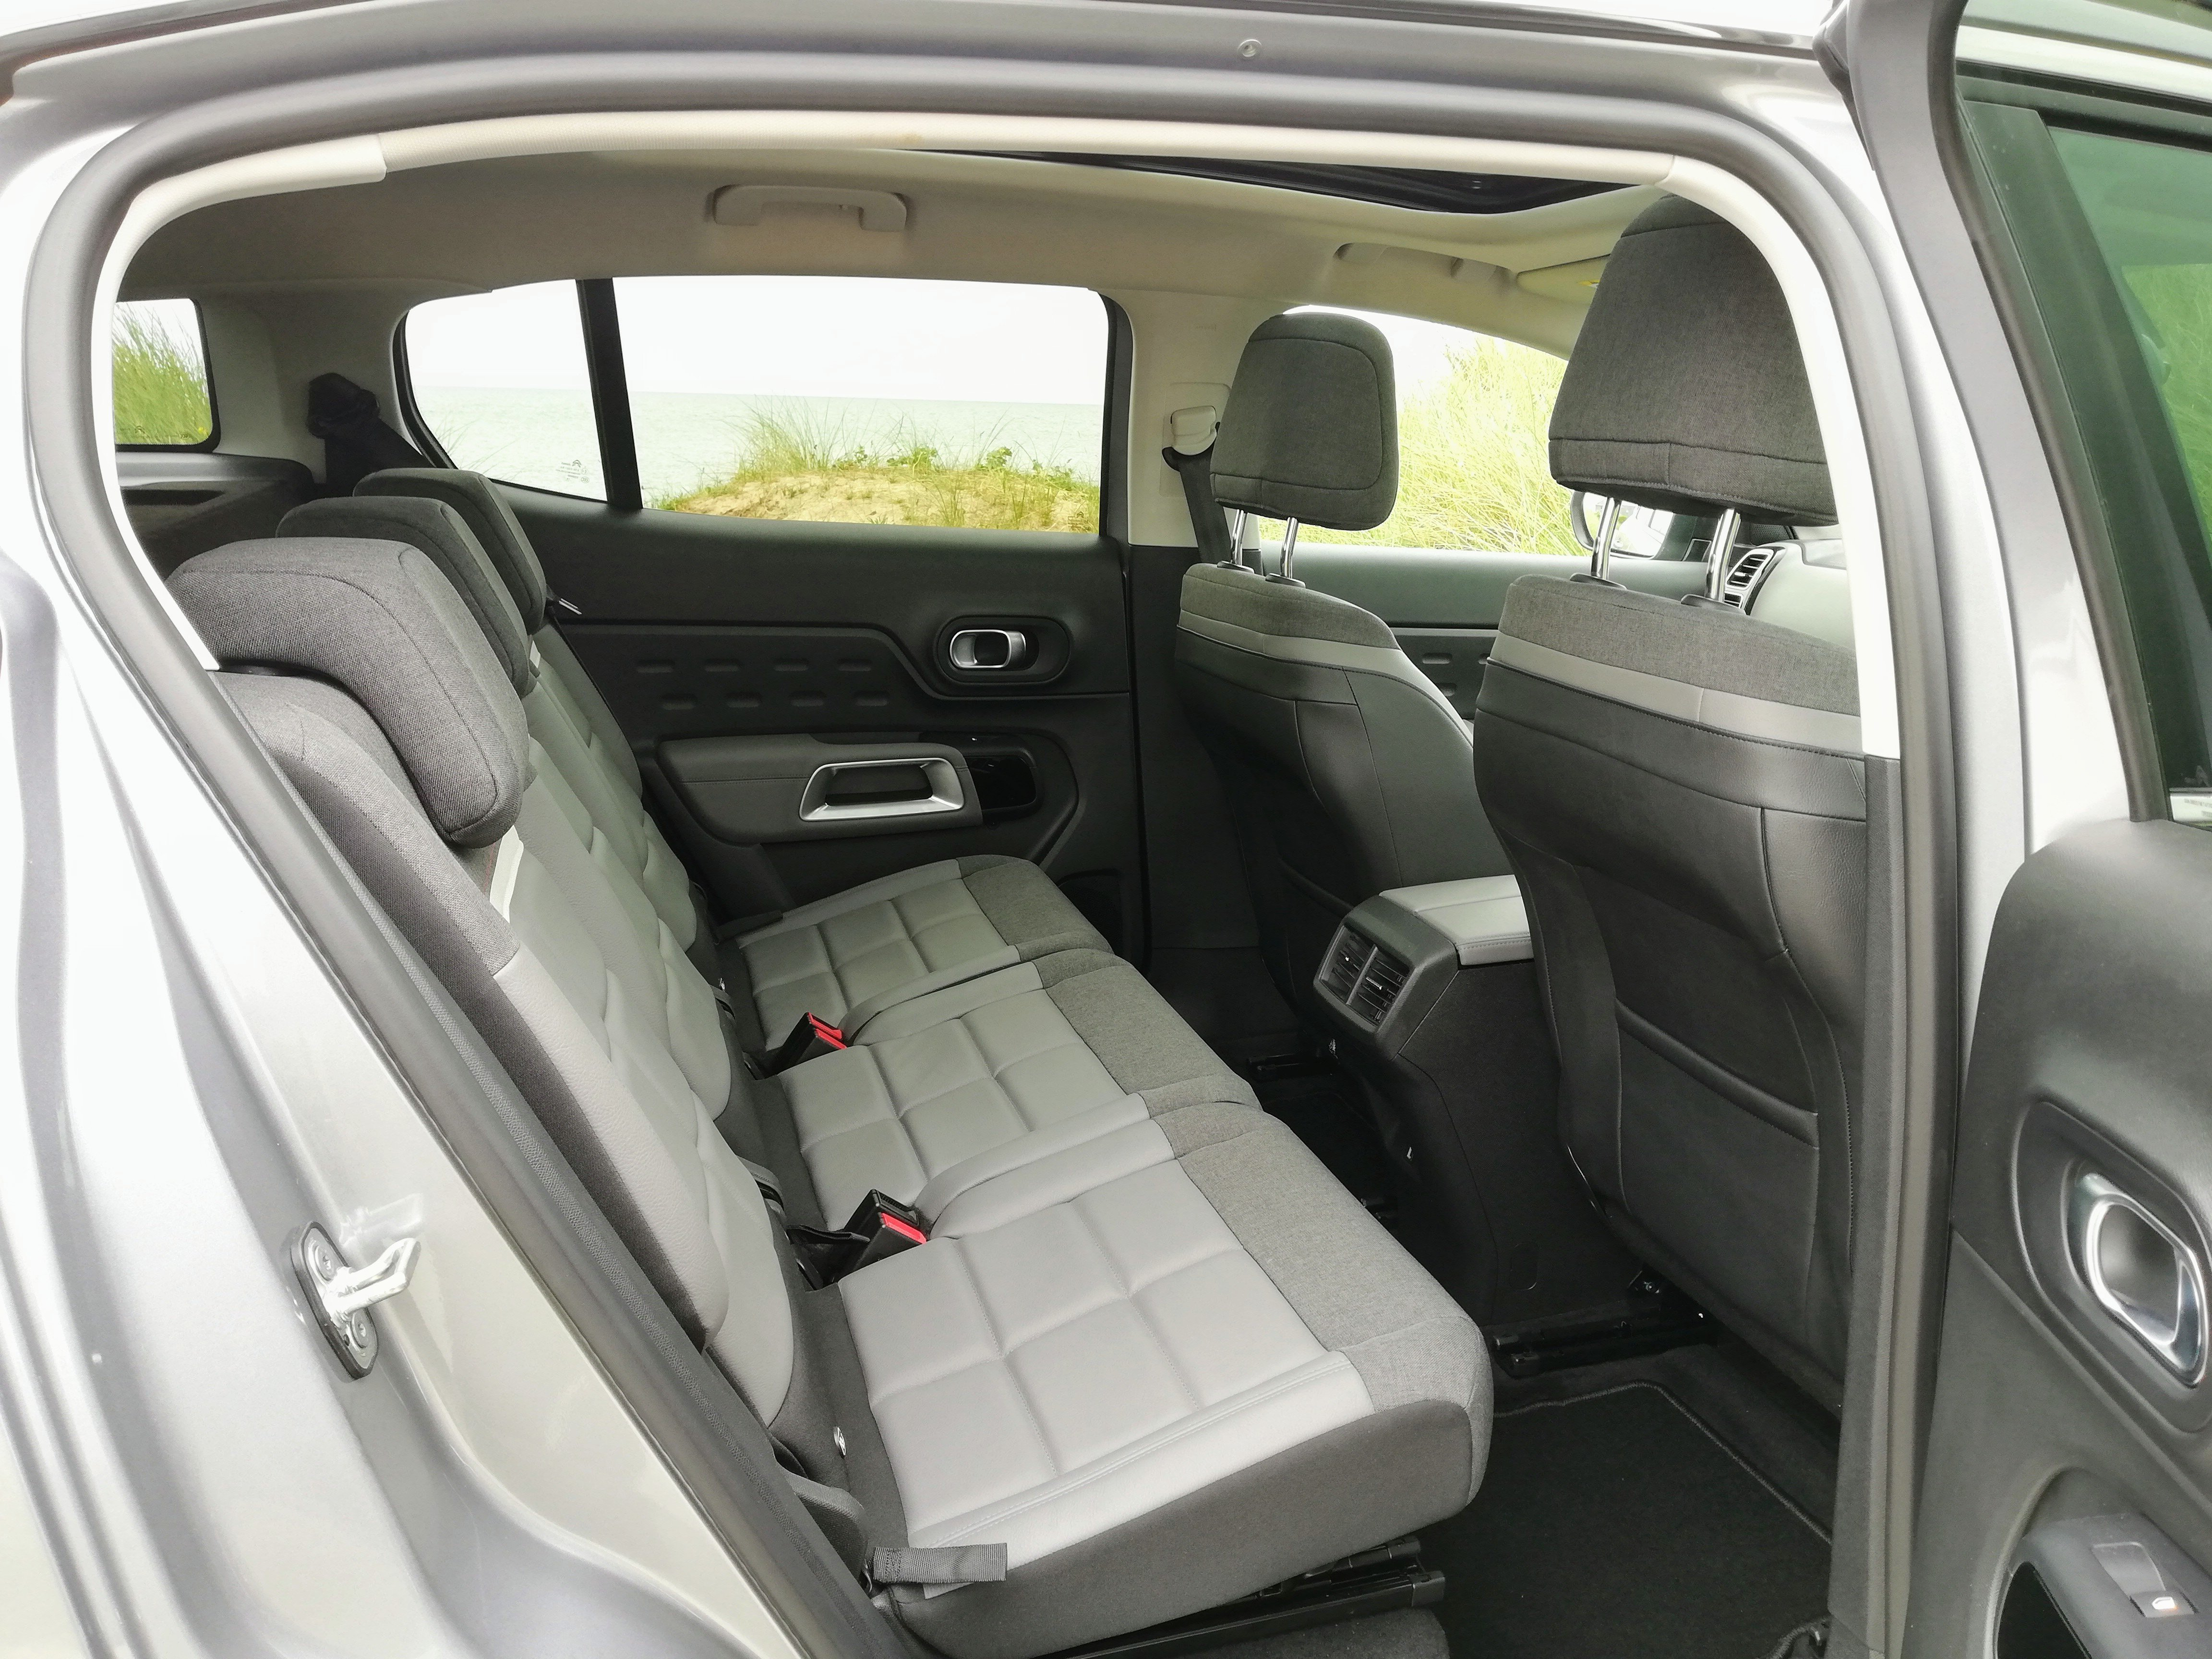 Rear seating in the C5 Aircross